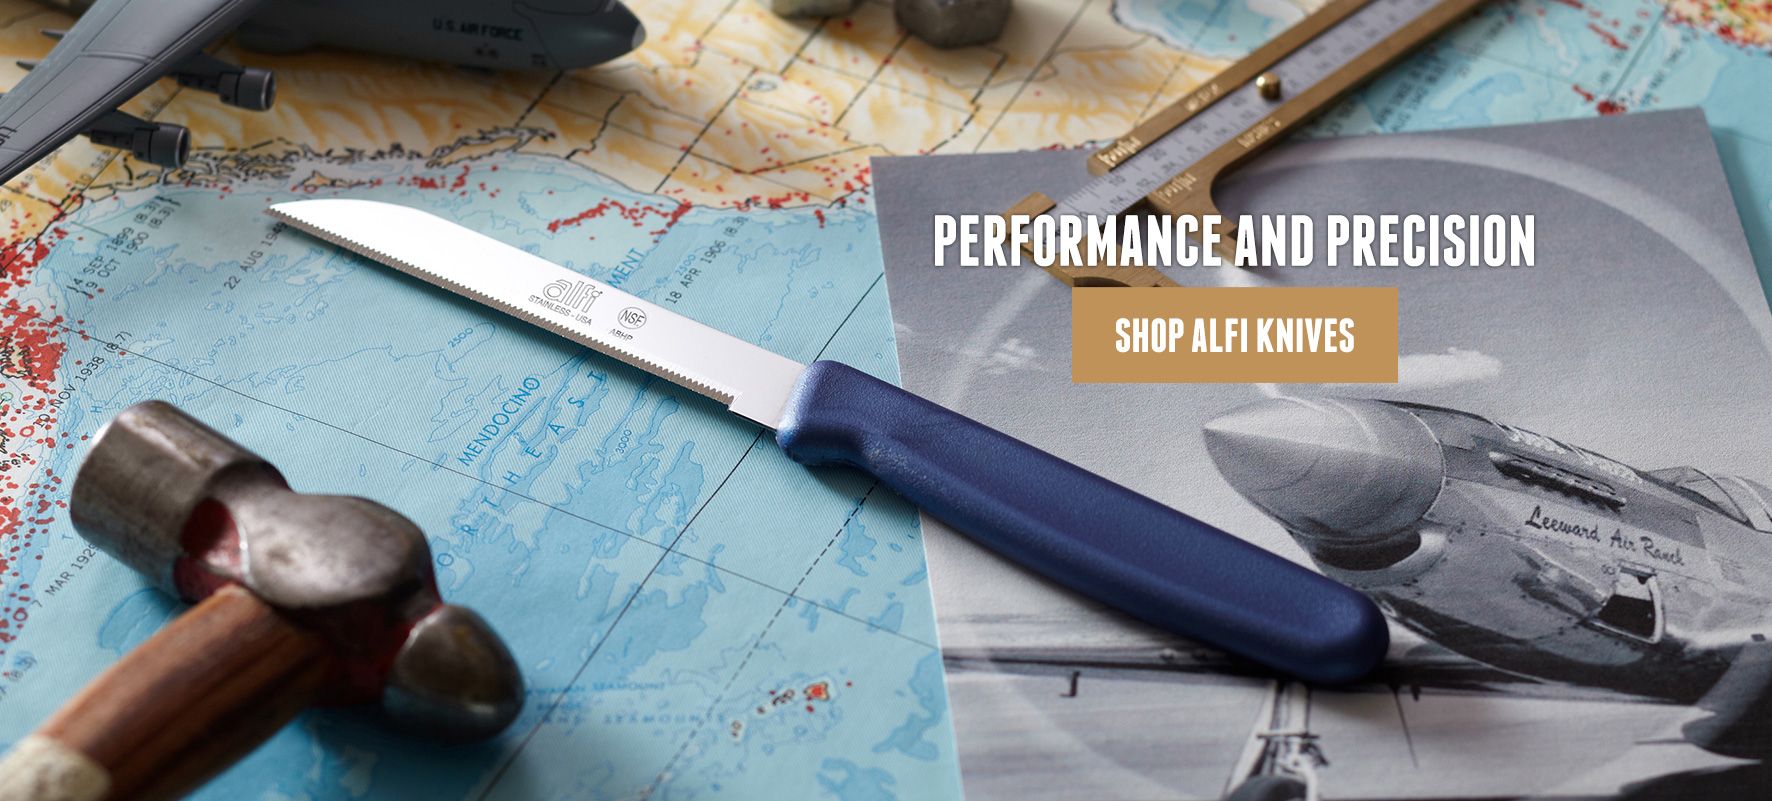 100 Kitchen Knives Made In The Usa Quality Cookware For Everyone Sparrow Hawk Cookware